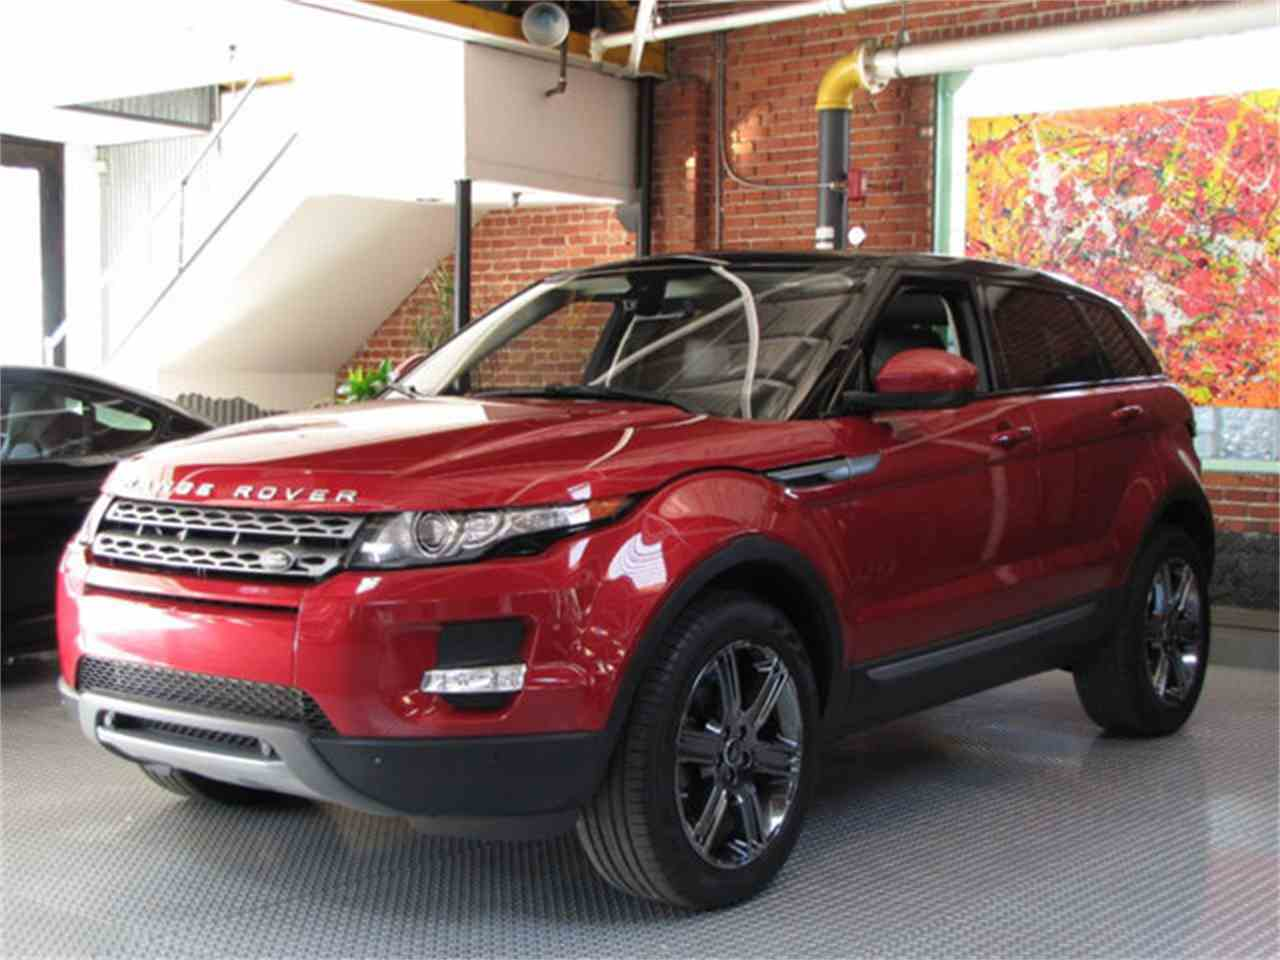 2015 land rover range rover evoque for sale cc 1051982. Black Bedroom Furniture Sets. Home Design Ideas